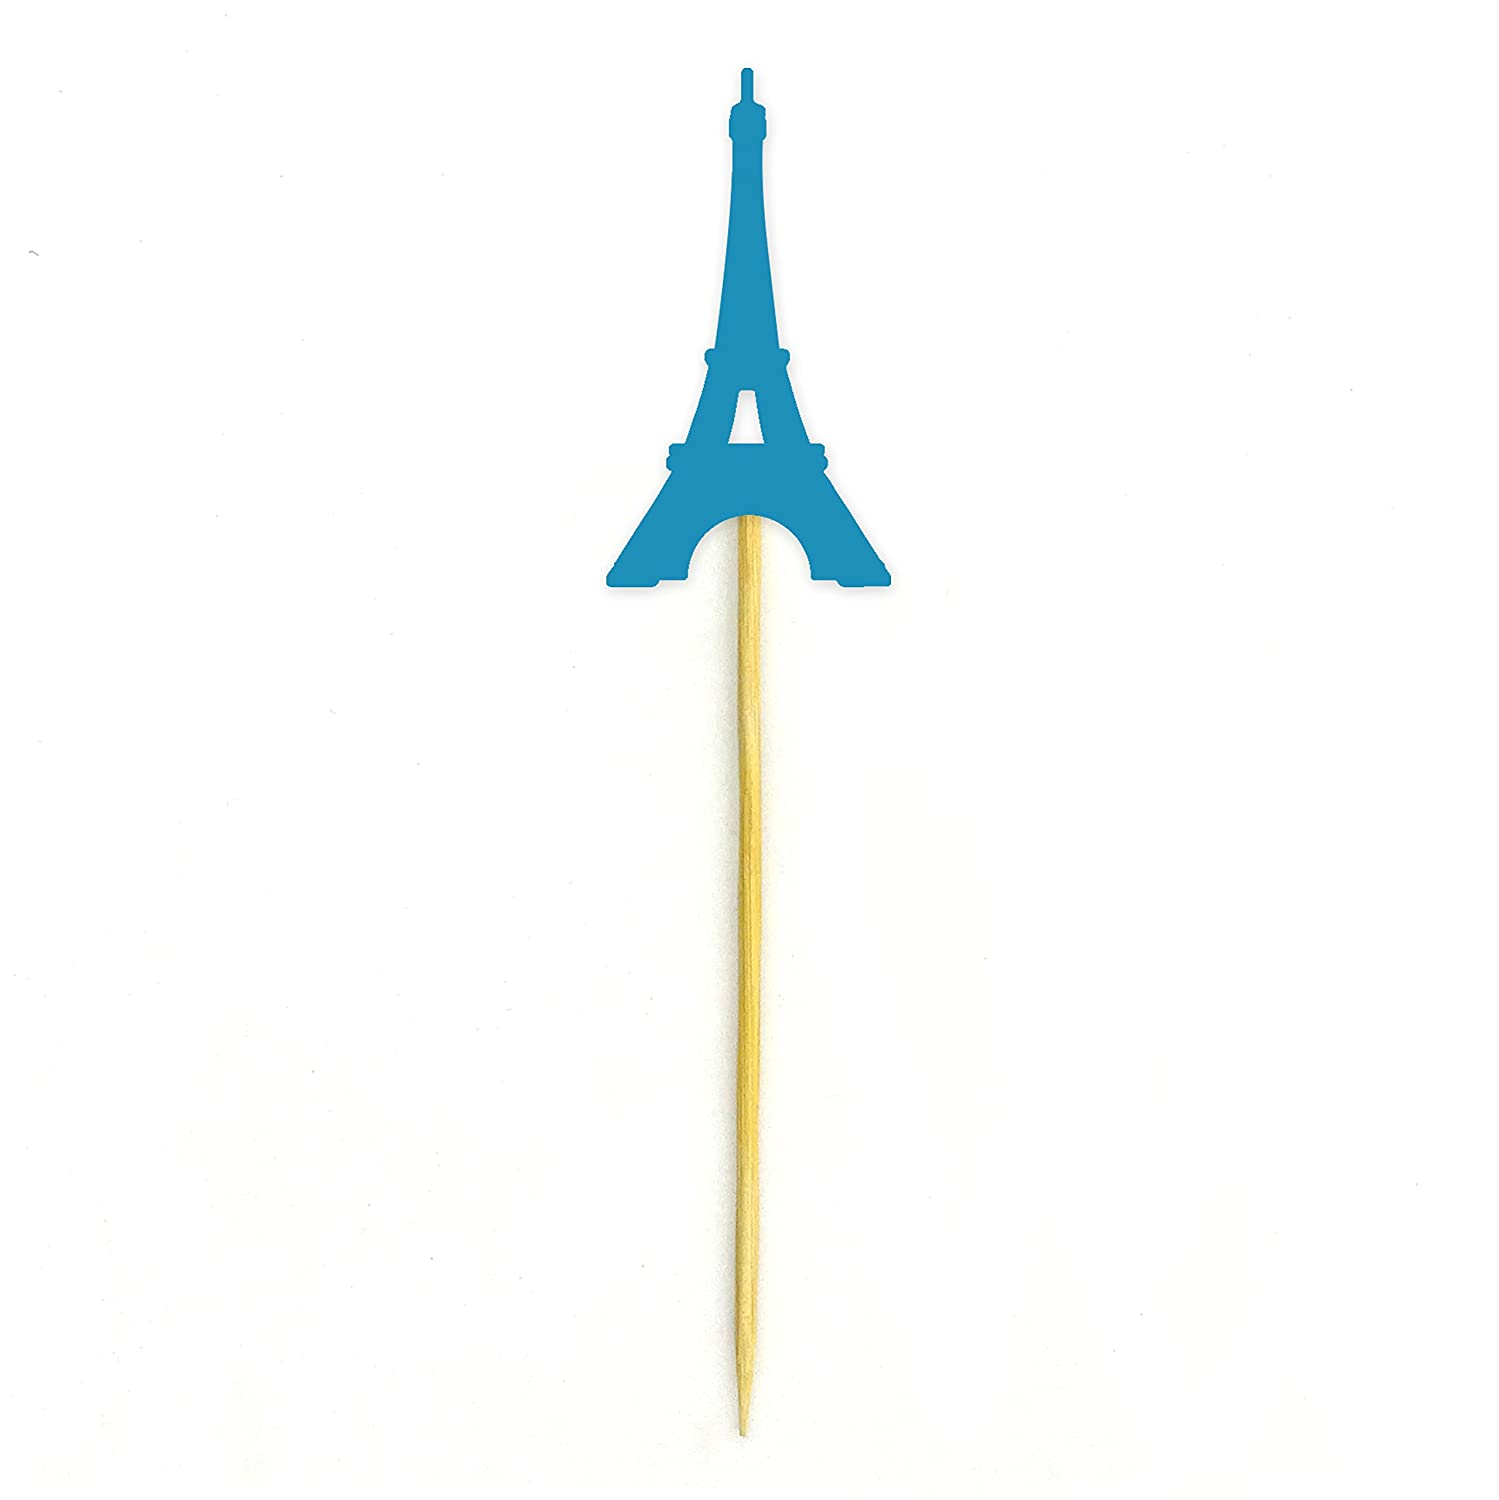 Wedding Party Dessert Decorations Pack Of 20 Darling Souvenir Eiffel Tower Cupcake Toppers